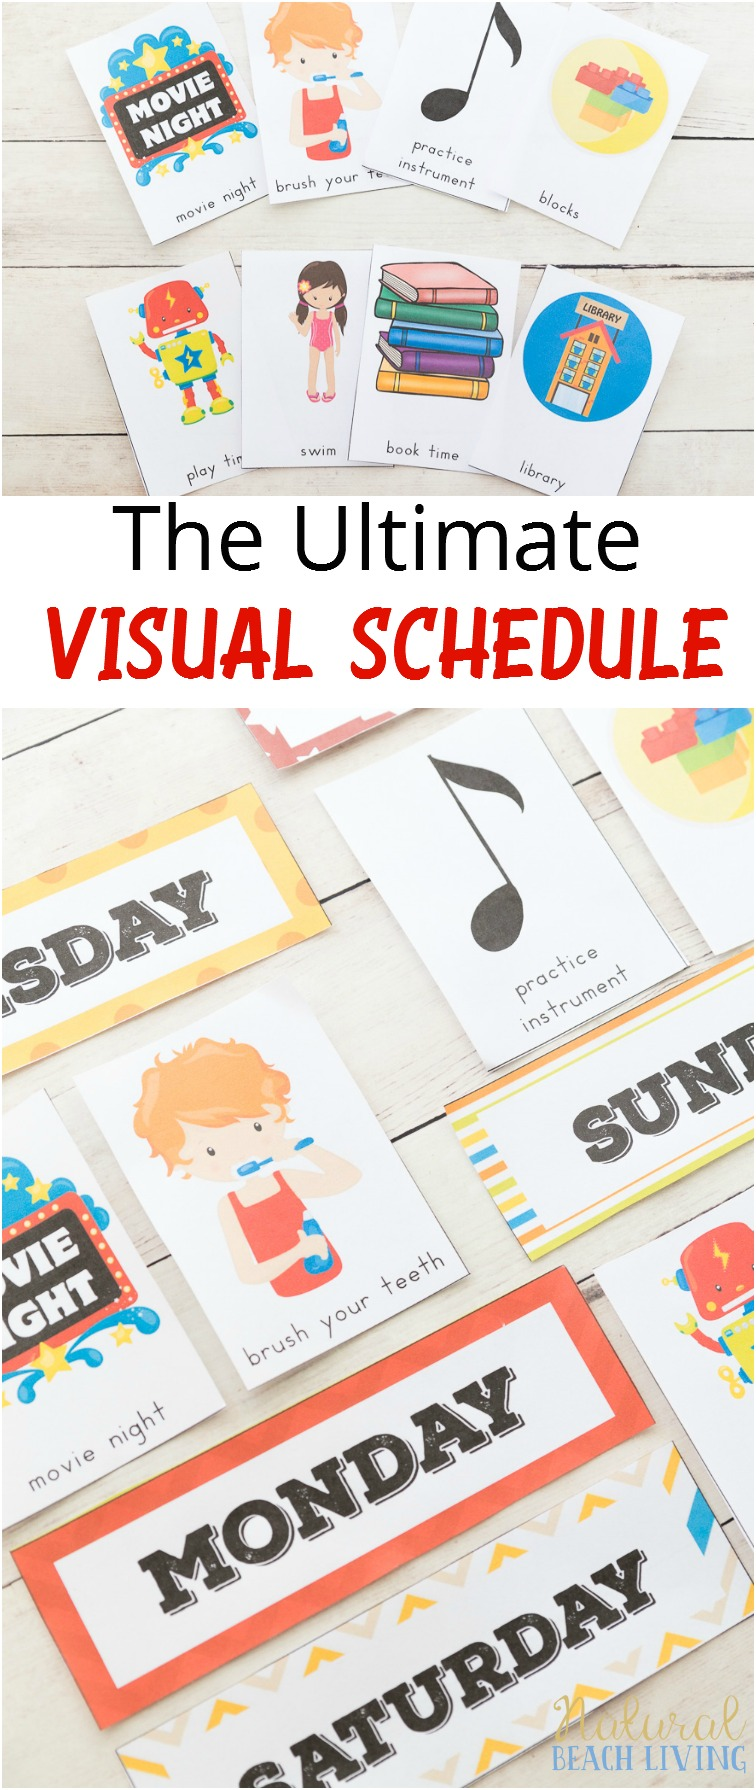 Daily Visual Schedule for keeping kids on task, Visual Schedule, Special Needs, Autism, Visual Schedule Printable for home & school, Free Printable Picture Schedule Cards, Visual Schedule Printable, #Autism #Visualschedule #specialneeds